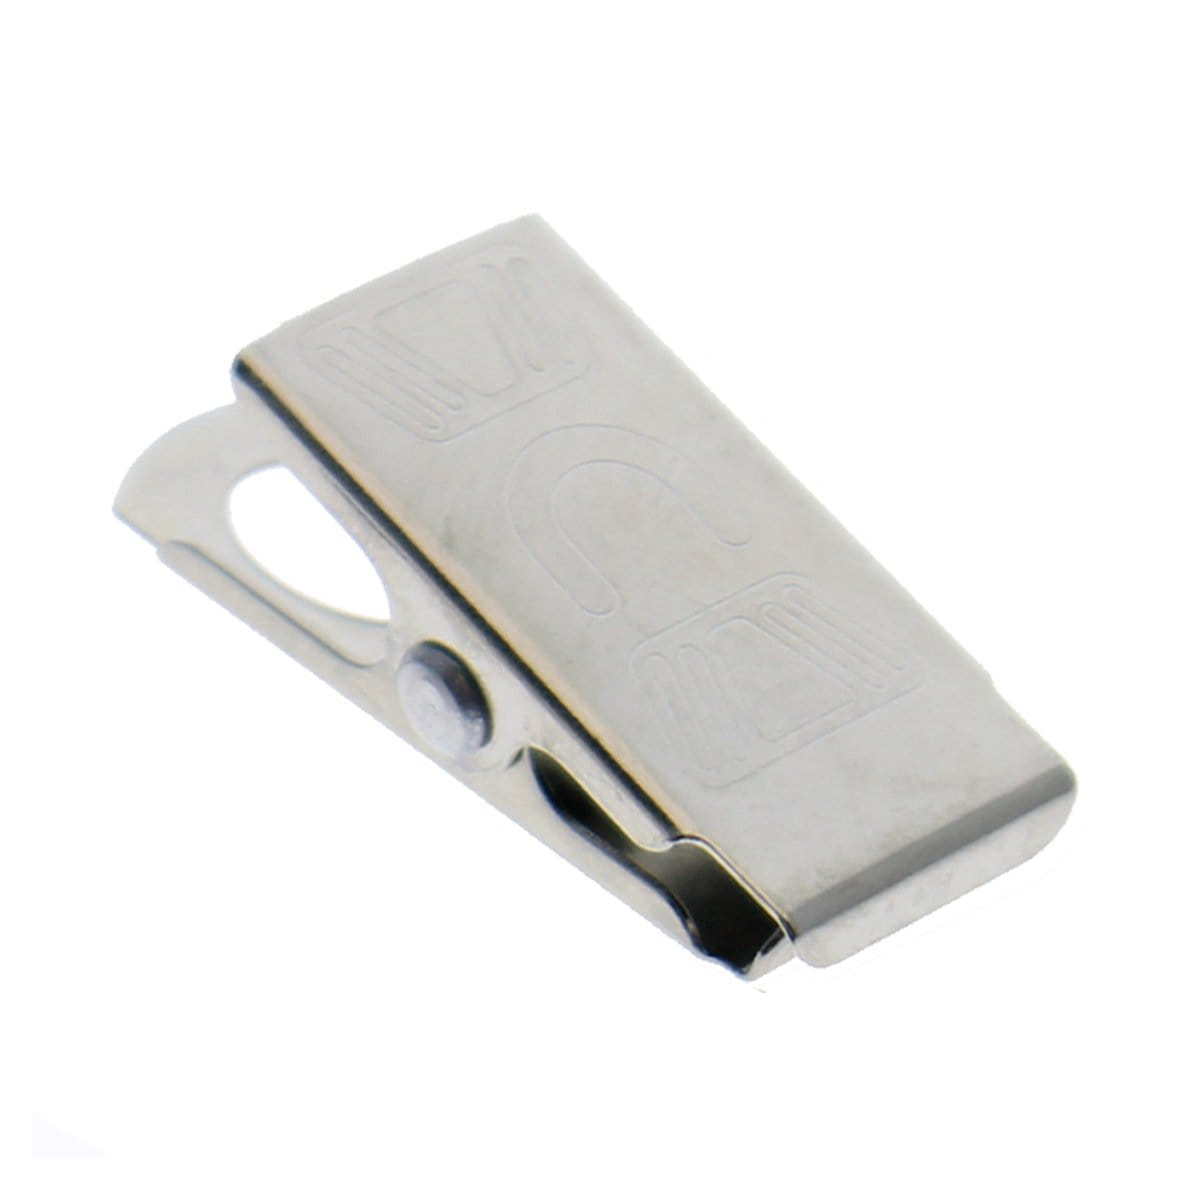 Bulldog Clips for DIY Lanyards and Arts and Crafts - Alligator Style Metal ID Clip (5705-3542)